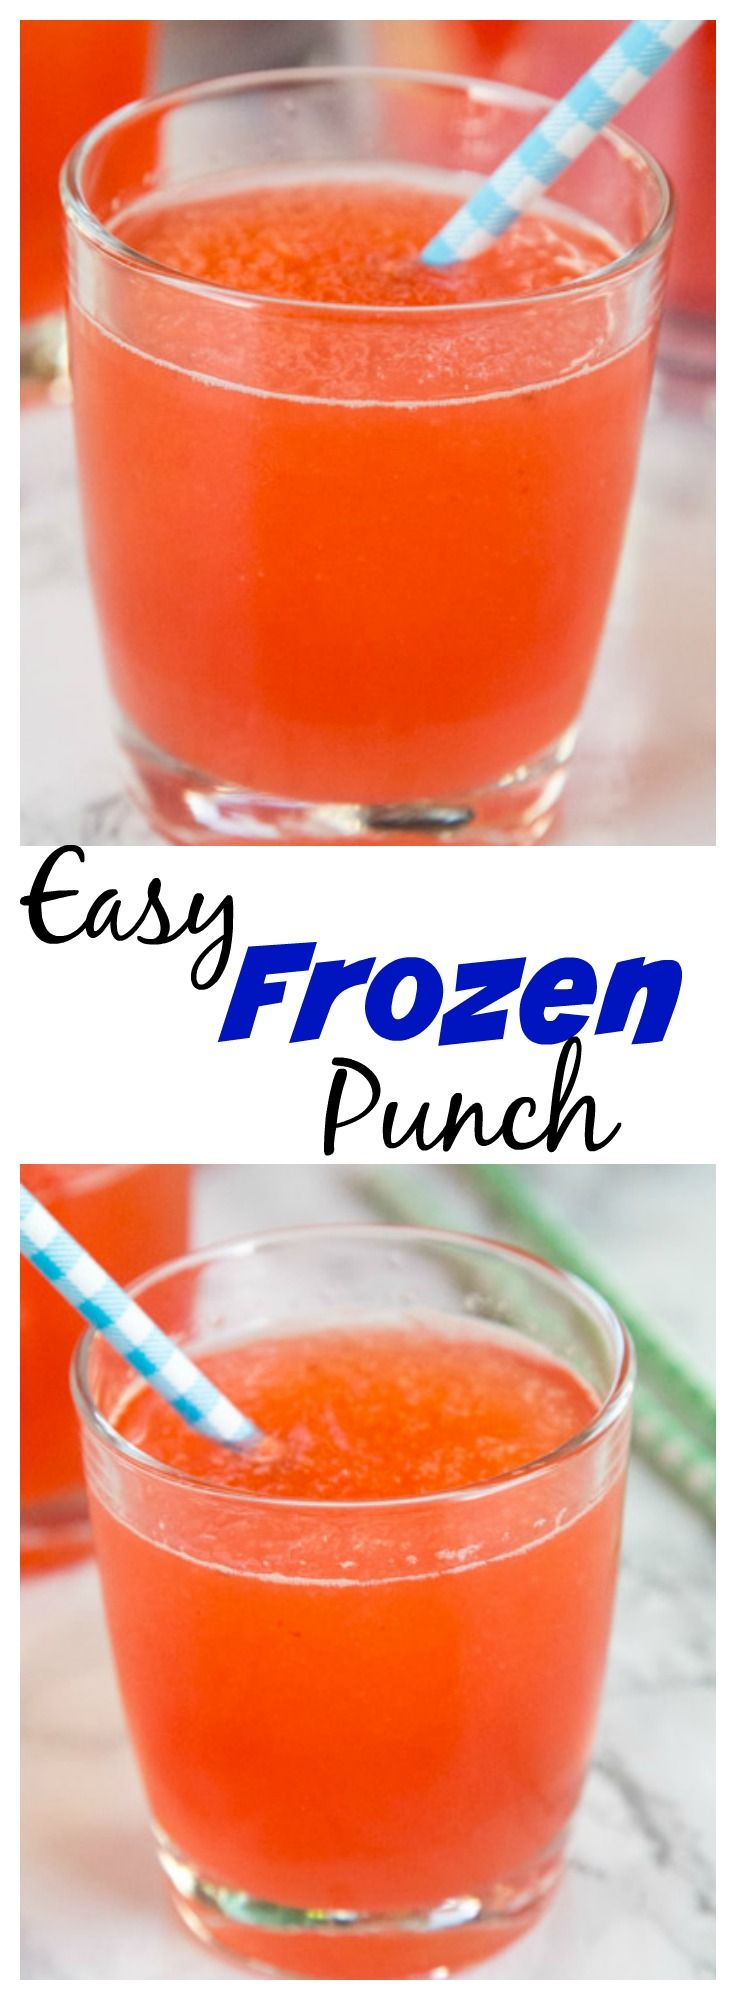 Best 25+ Frozen punch recipe ideas on Pinterest | Frozen alcoholic ...